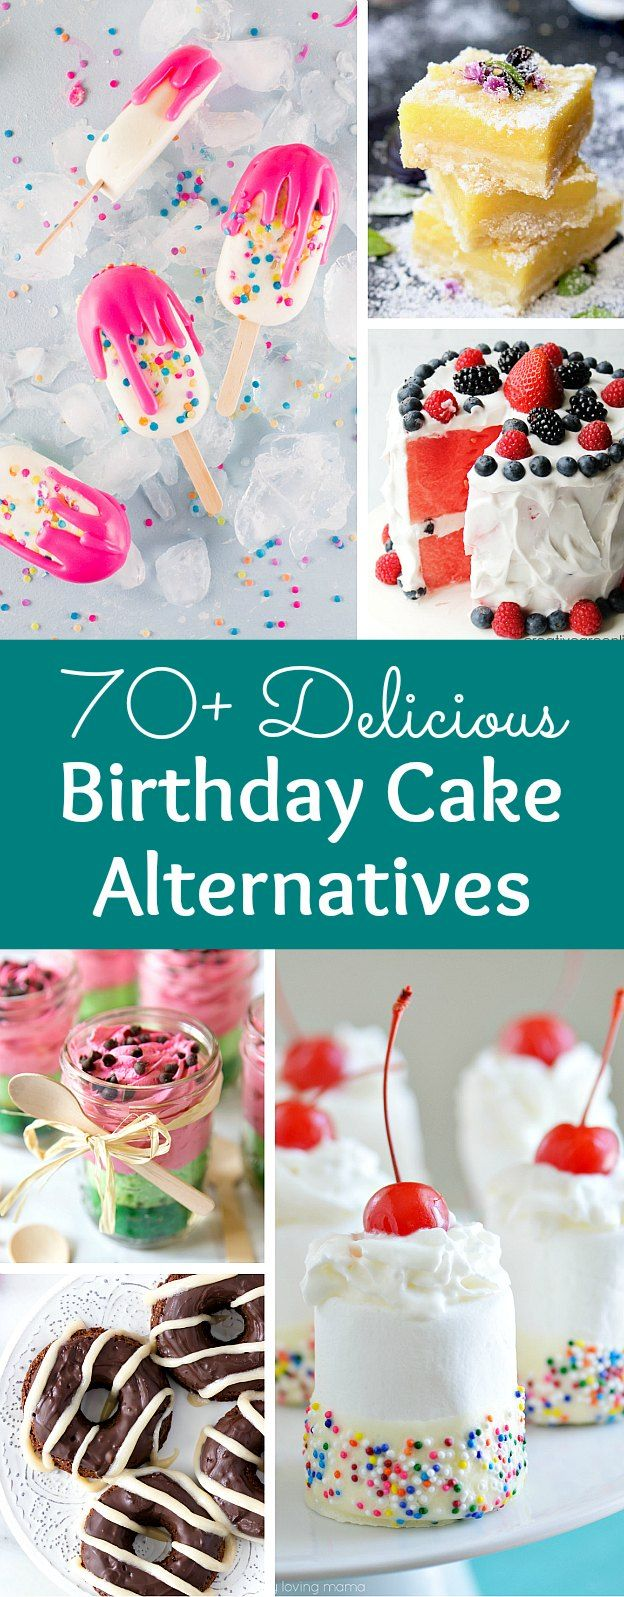 The Ultimate List Of Birthday Cake Alternatives With Images